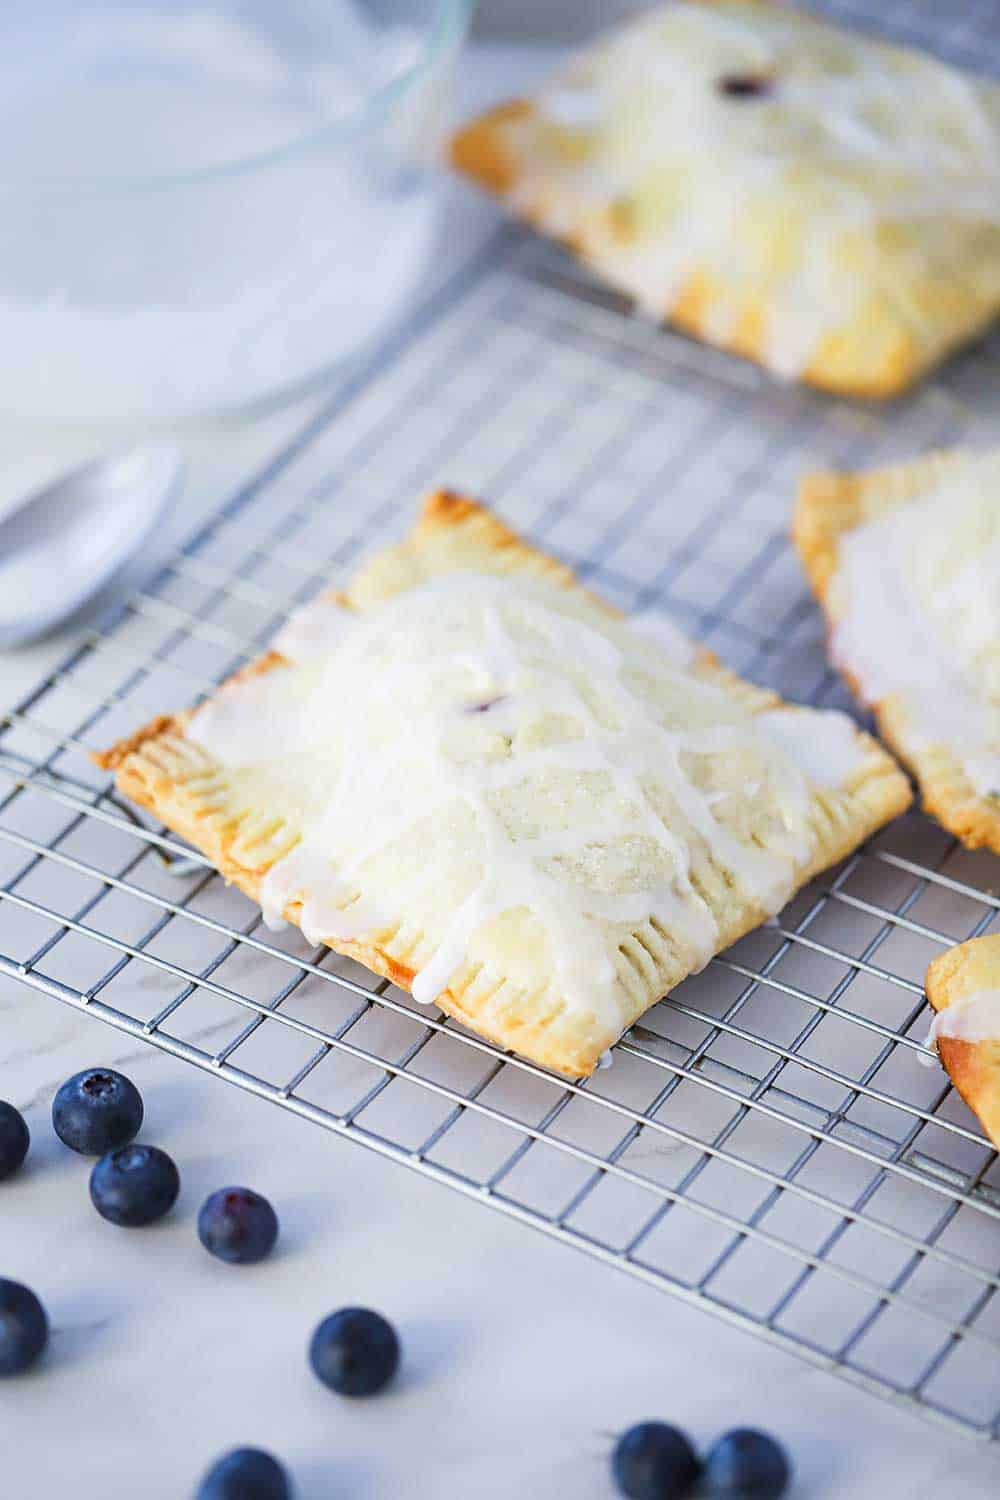 Homemade blueberry pop tarts on a baking rack with fresh blueberries and spoon sitting nearby.